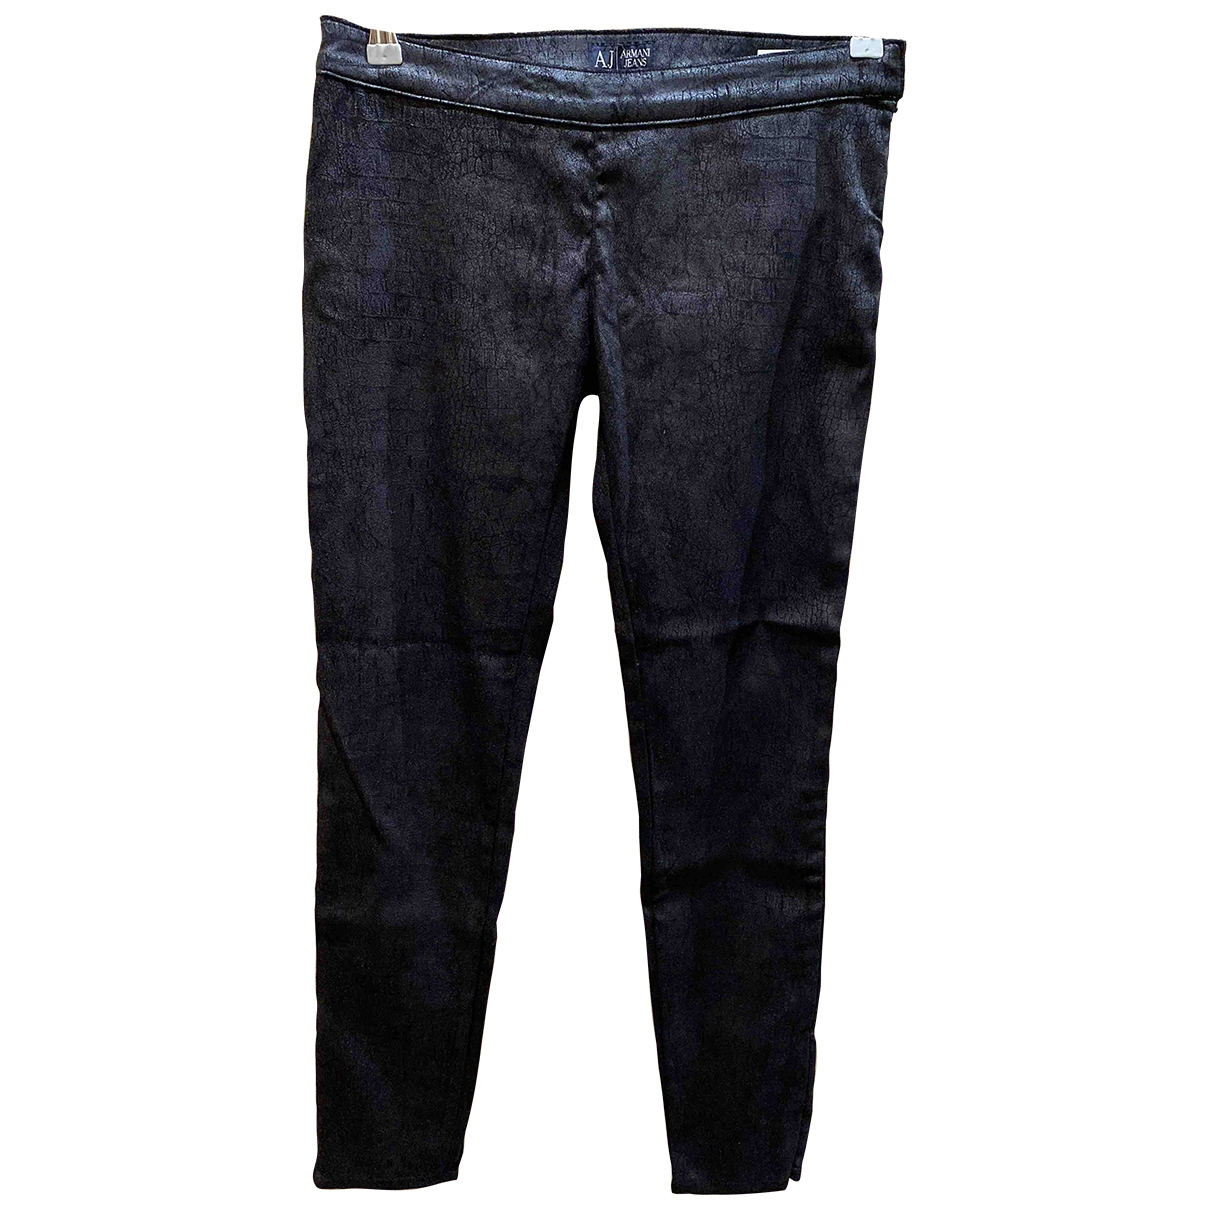 Armani Jeans \N Black Trousers for Women 40 IT